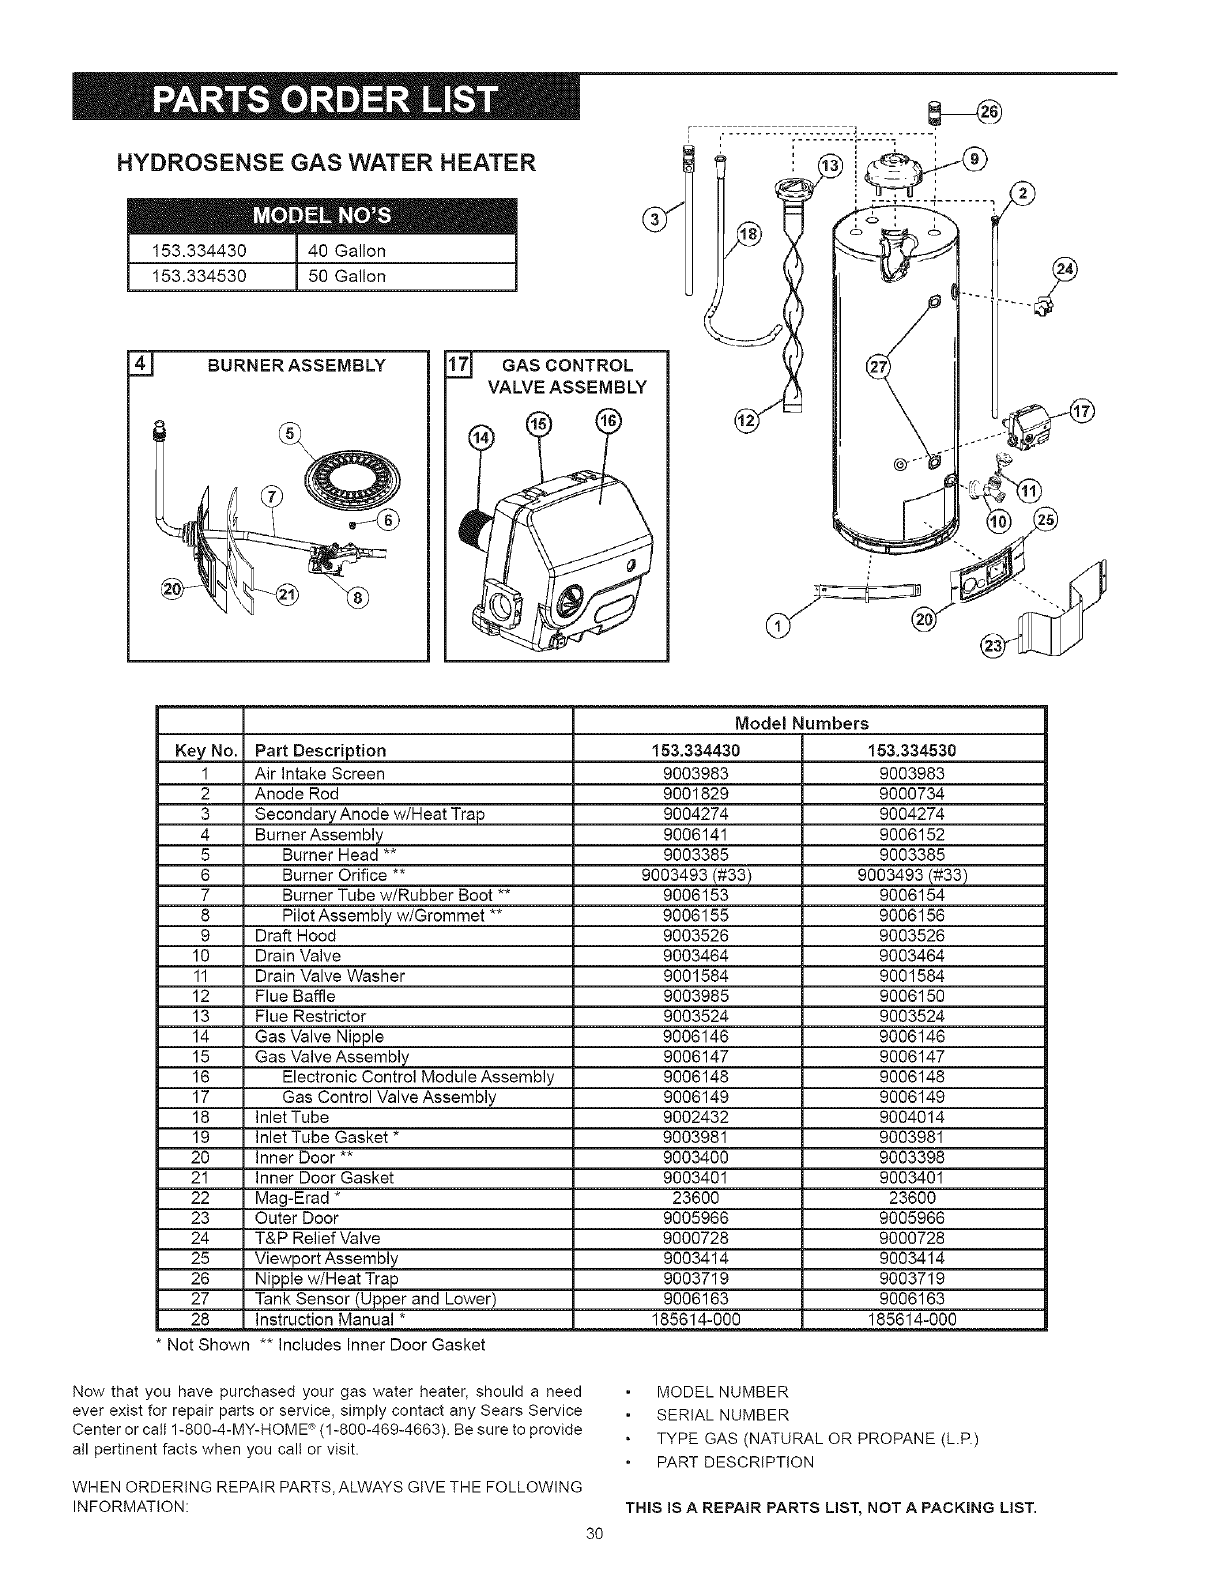 Page 30 of kenmore water heater 334 user guide manualsonline ccuart Images